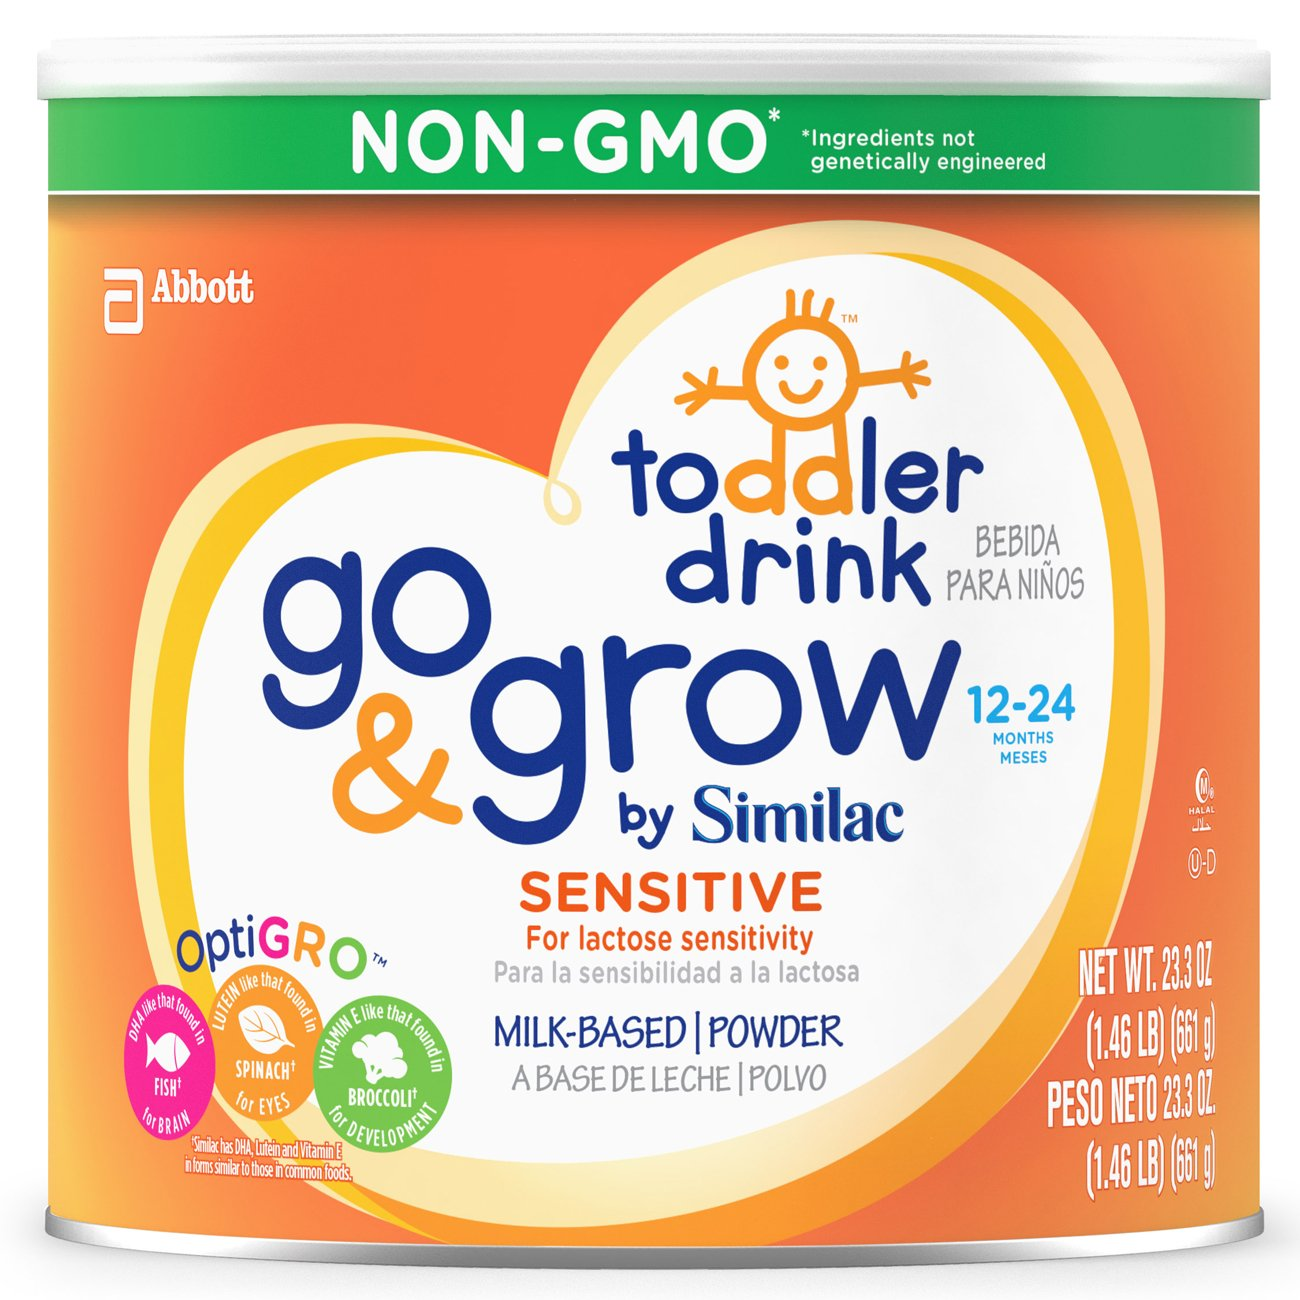 Go & Grow By Similac Sensitive Milk Based Toddler Drink, For Lactose Sensitivity, Large Size Powder, 23.2 Ounces (Pack of 6) by Similac (Image #1)